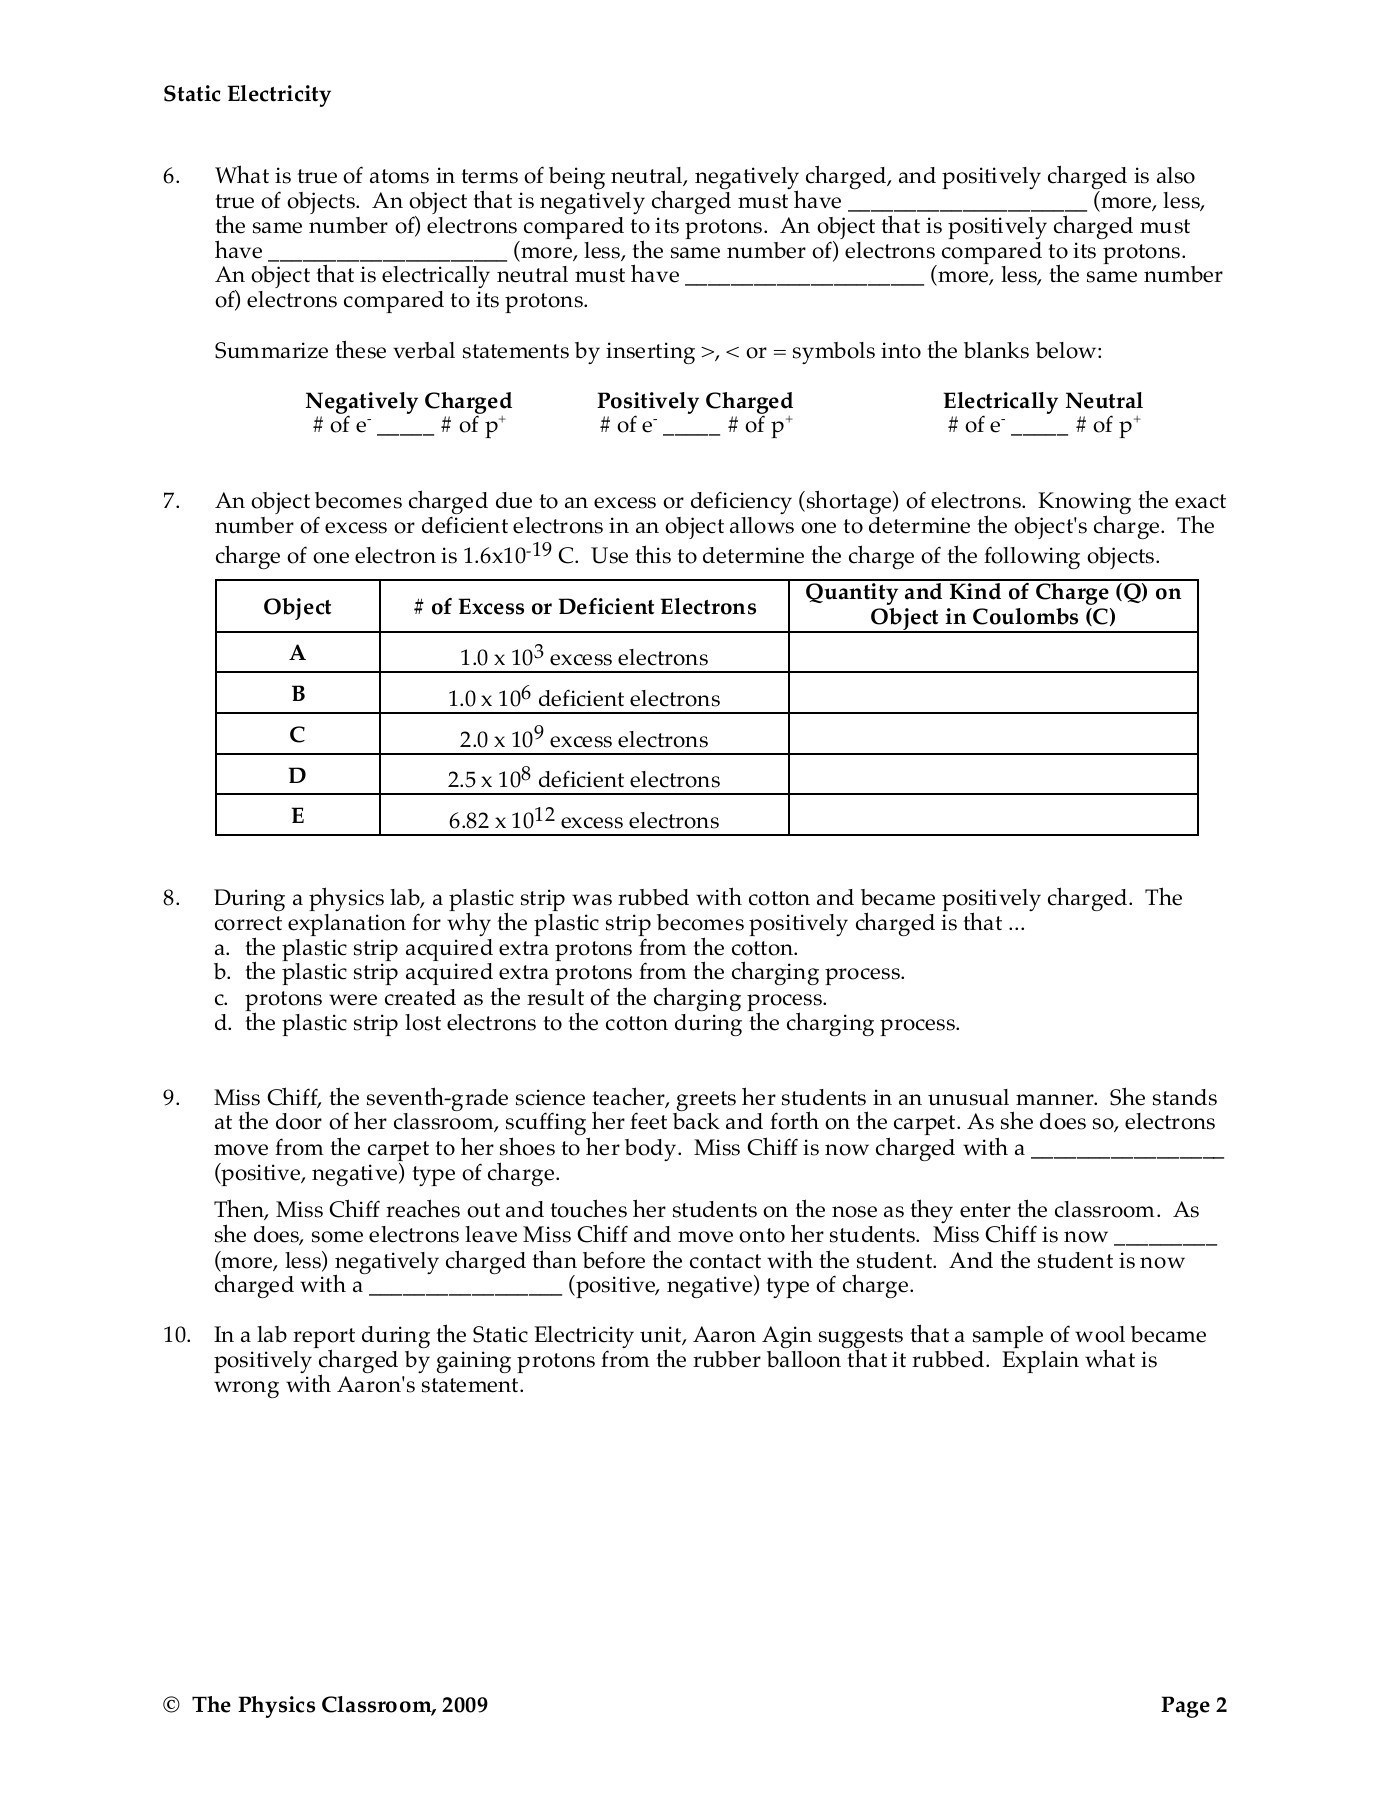 30 Static Electricity Worksheet